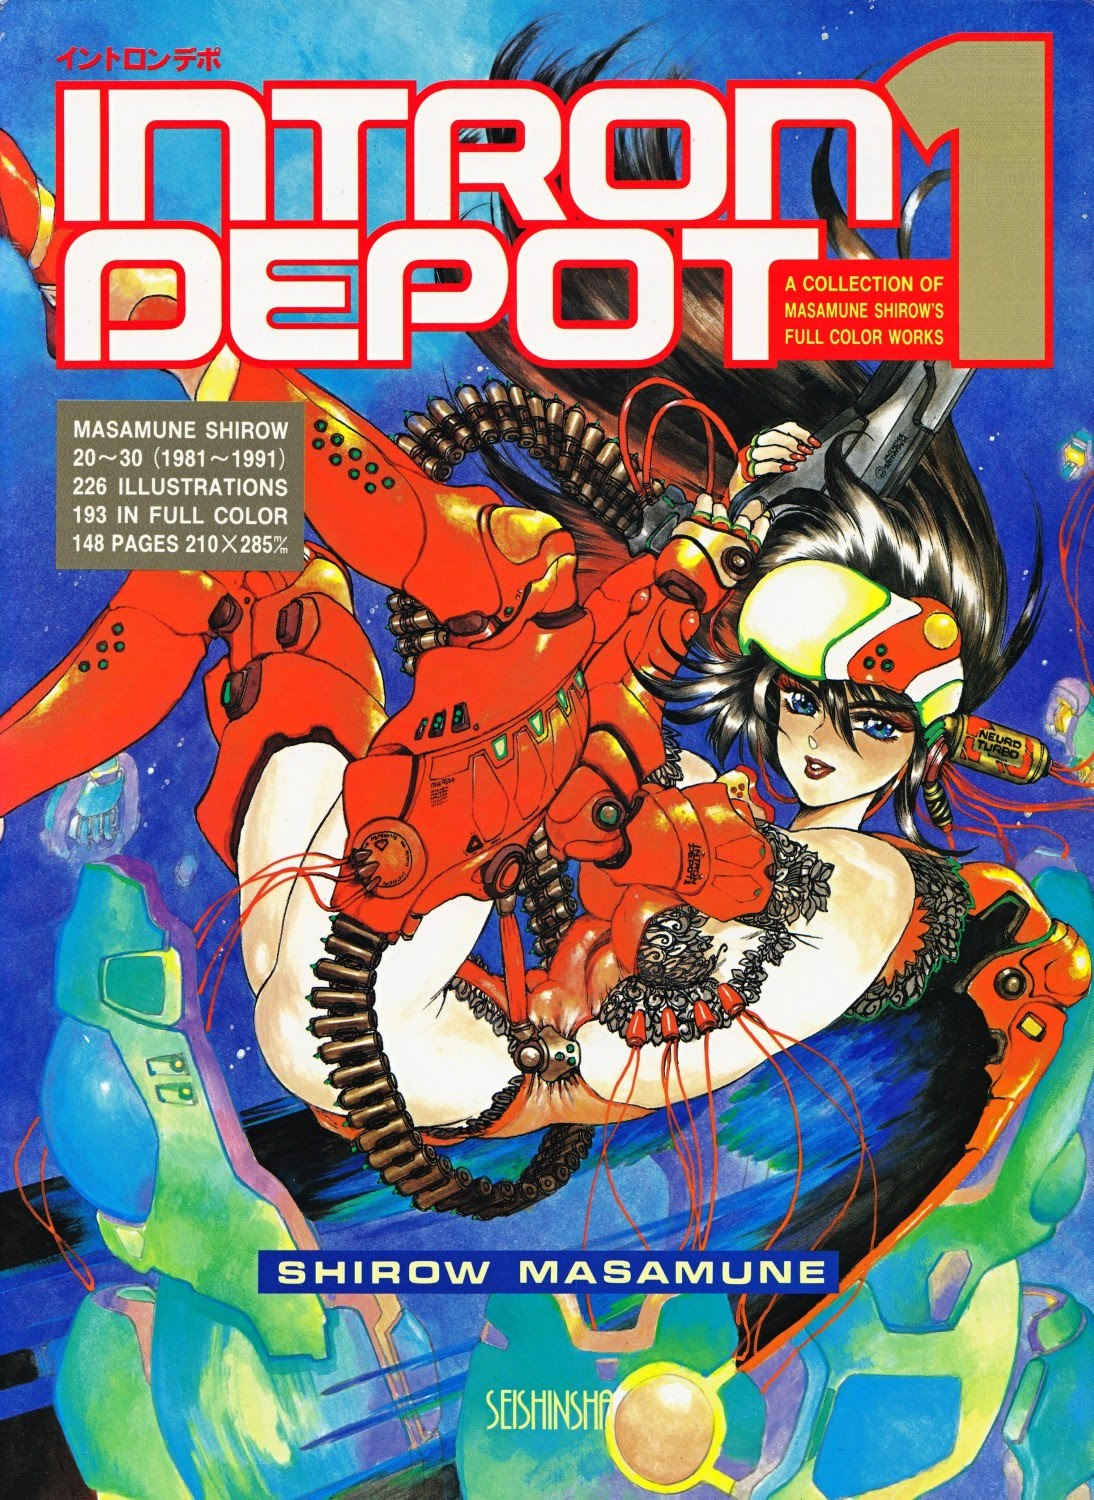 Archive Scans Intron Depot 1 Masamune Shirow